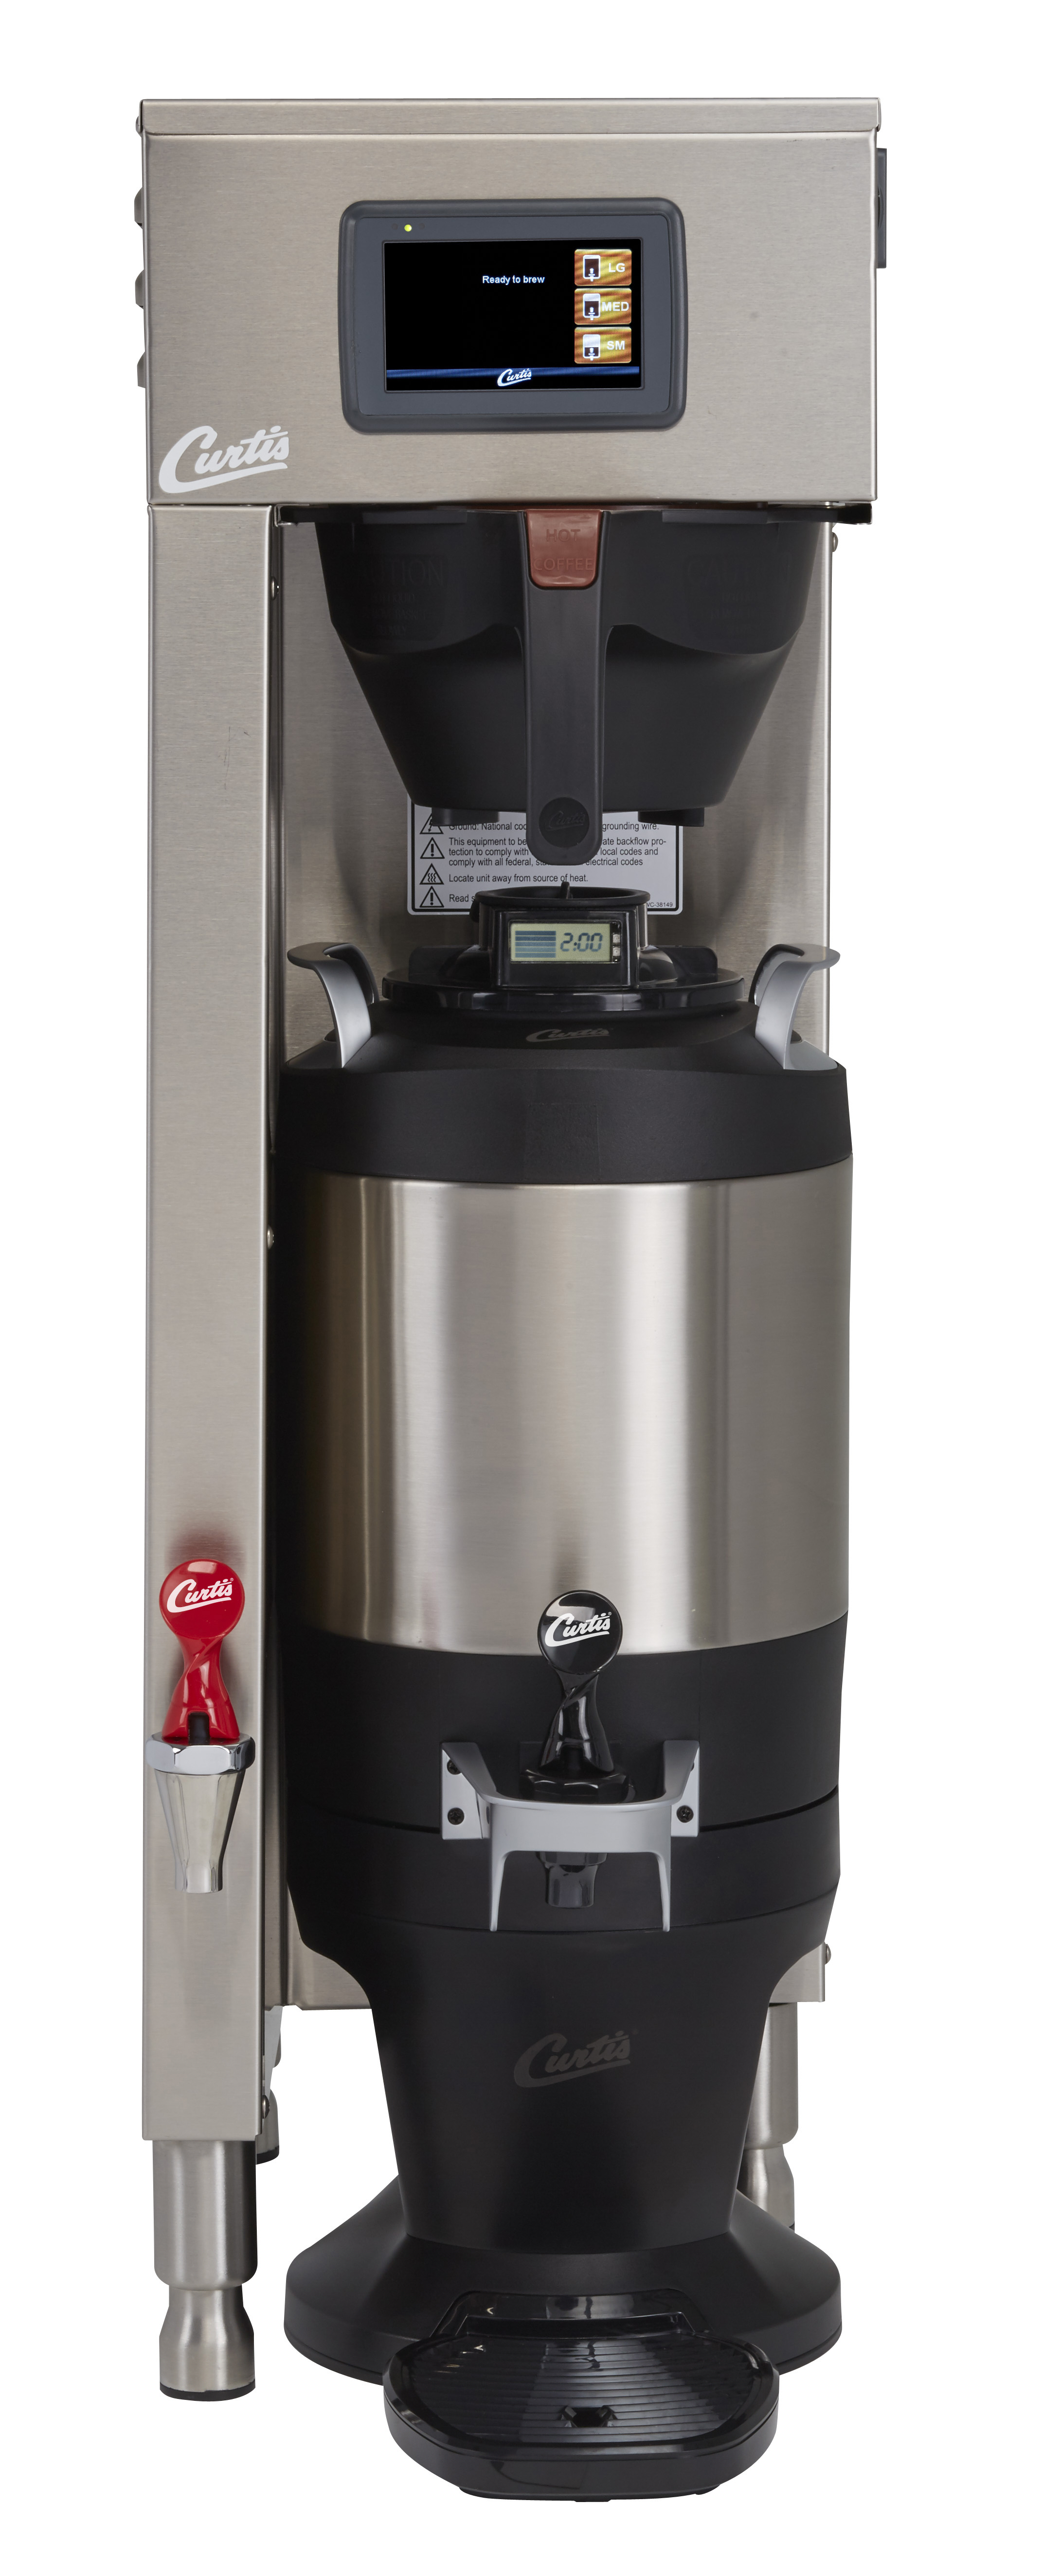 16e4f8a1a BREWER NEW CURTIS G4 TP2S10 SINGLE AUTOMATIC 220 VOLTS (SERVER NOT INCLUDED)